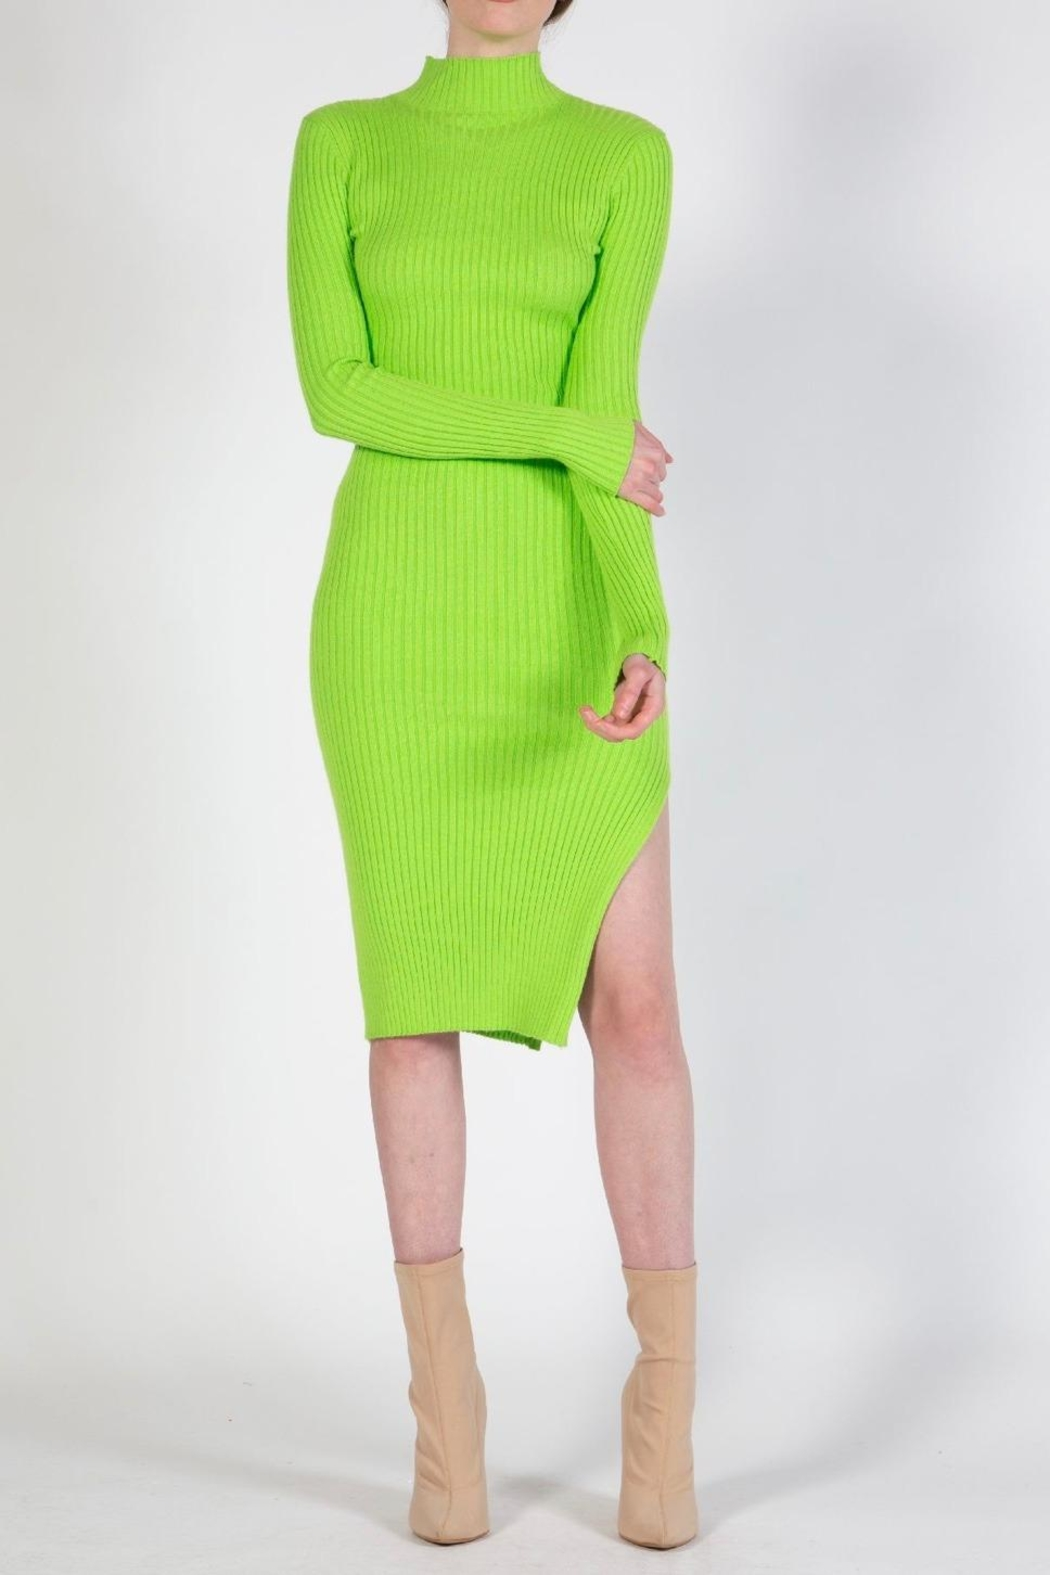 BEULAH STYLE Lime Sweater Dress - Main Image